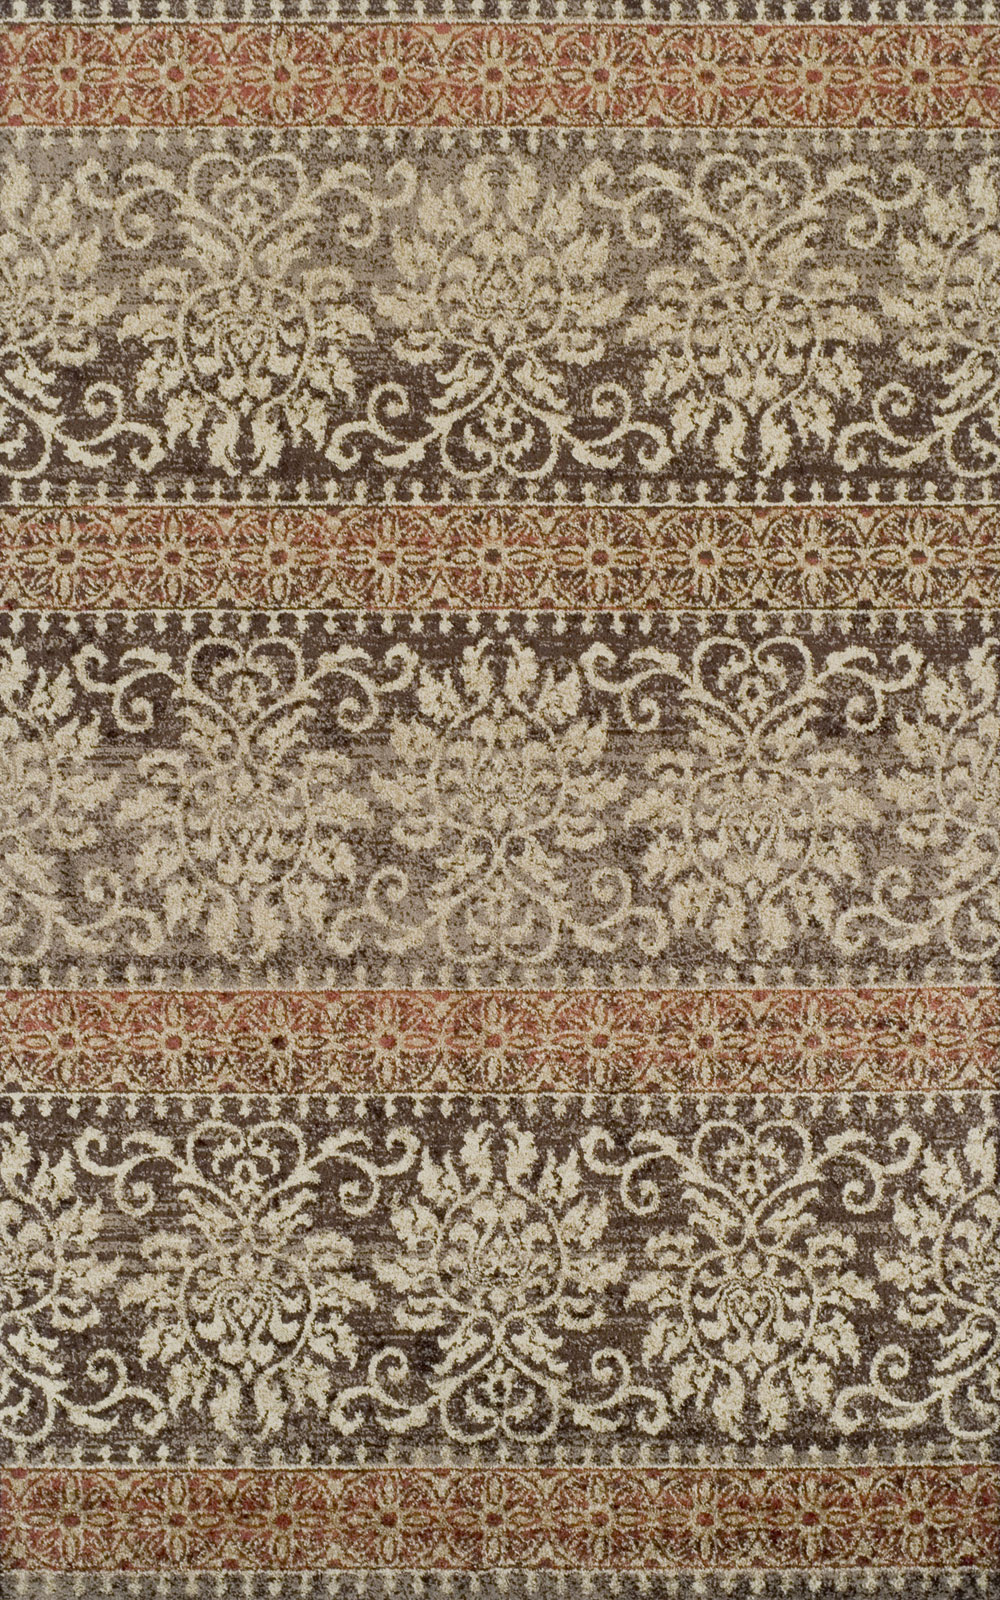 Dalyn Gala GA6 Chocolate Rug